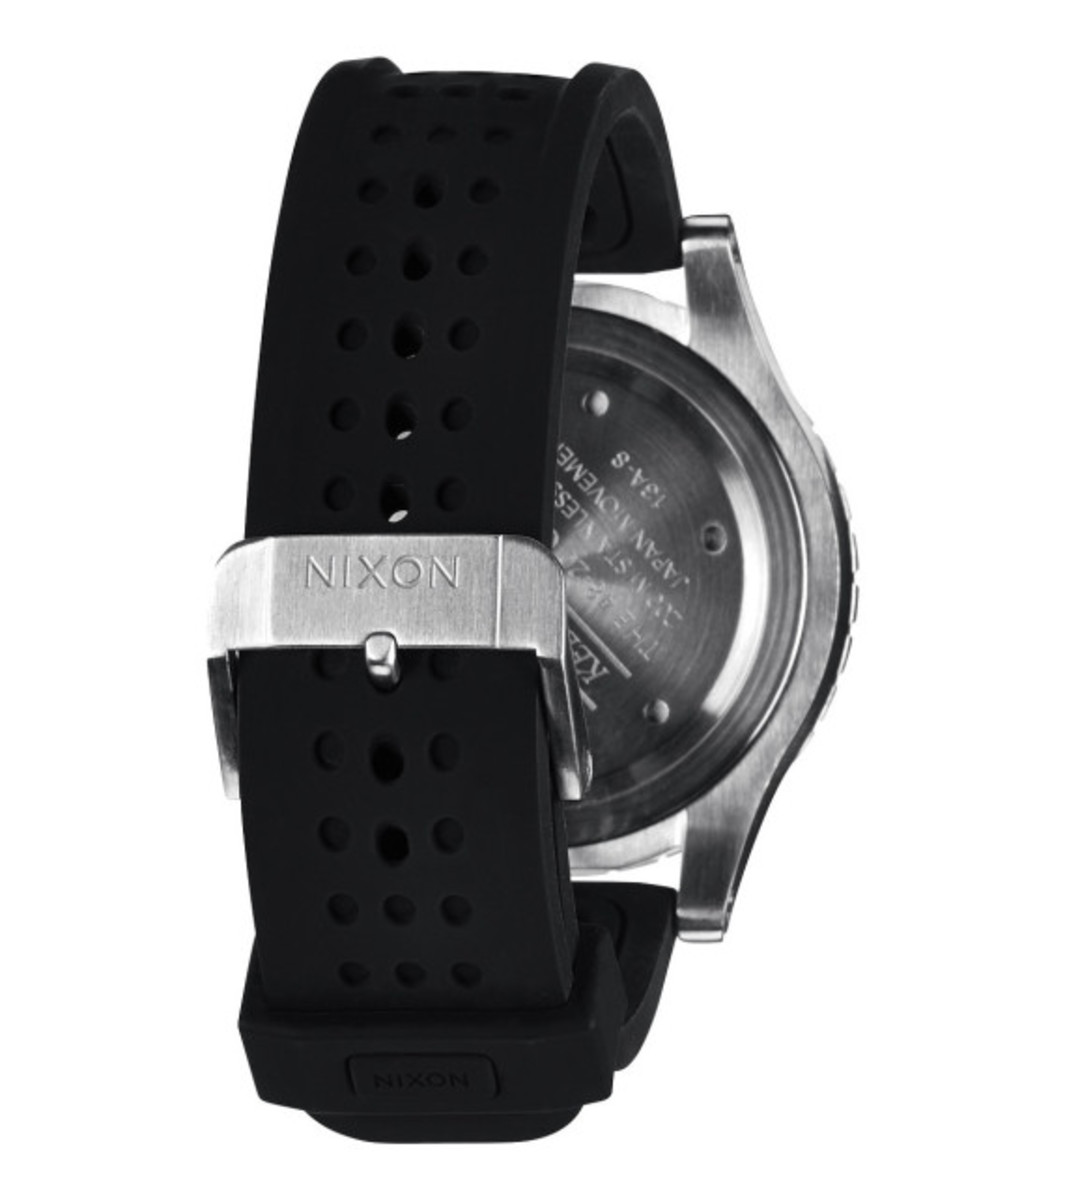 nixon-the-48-20-chrono-p-watch-05